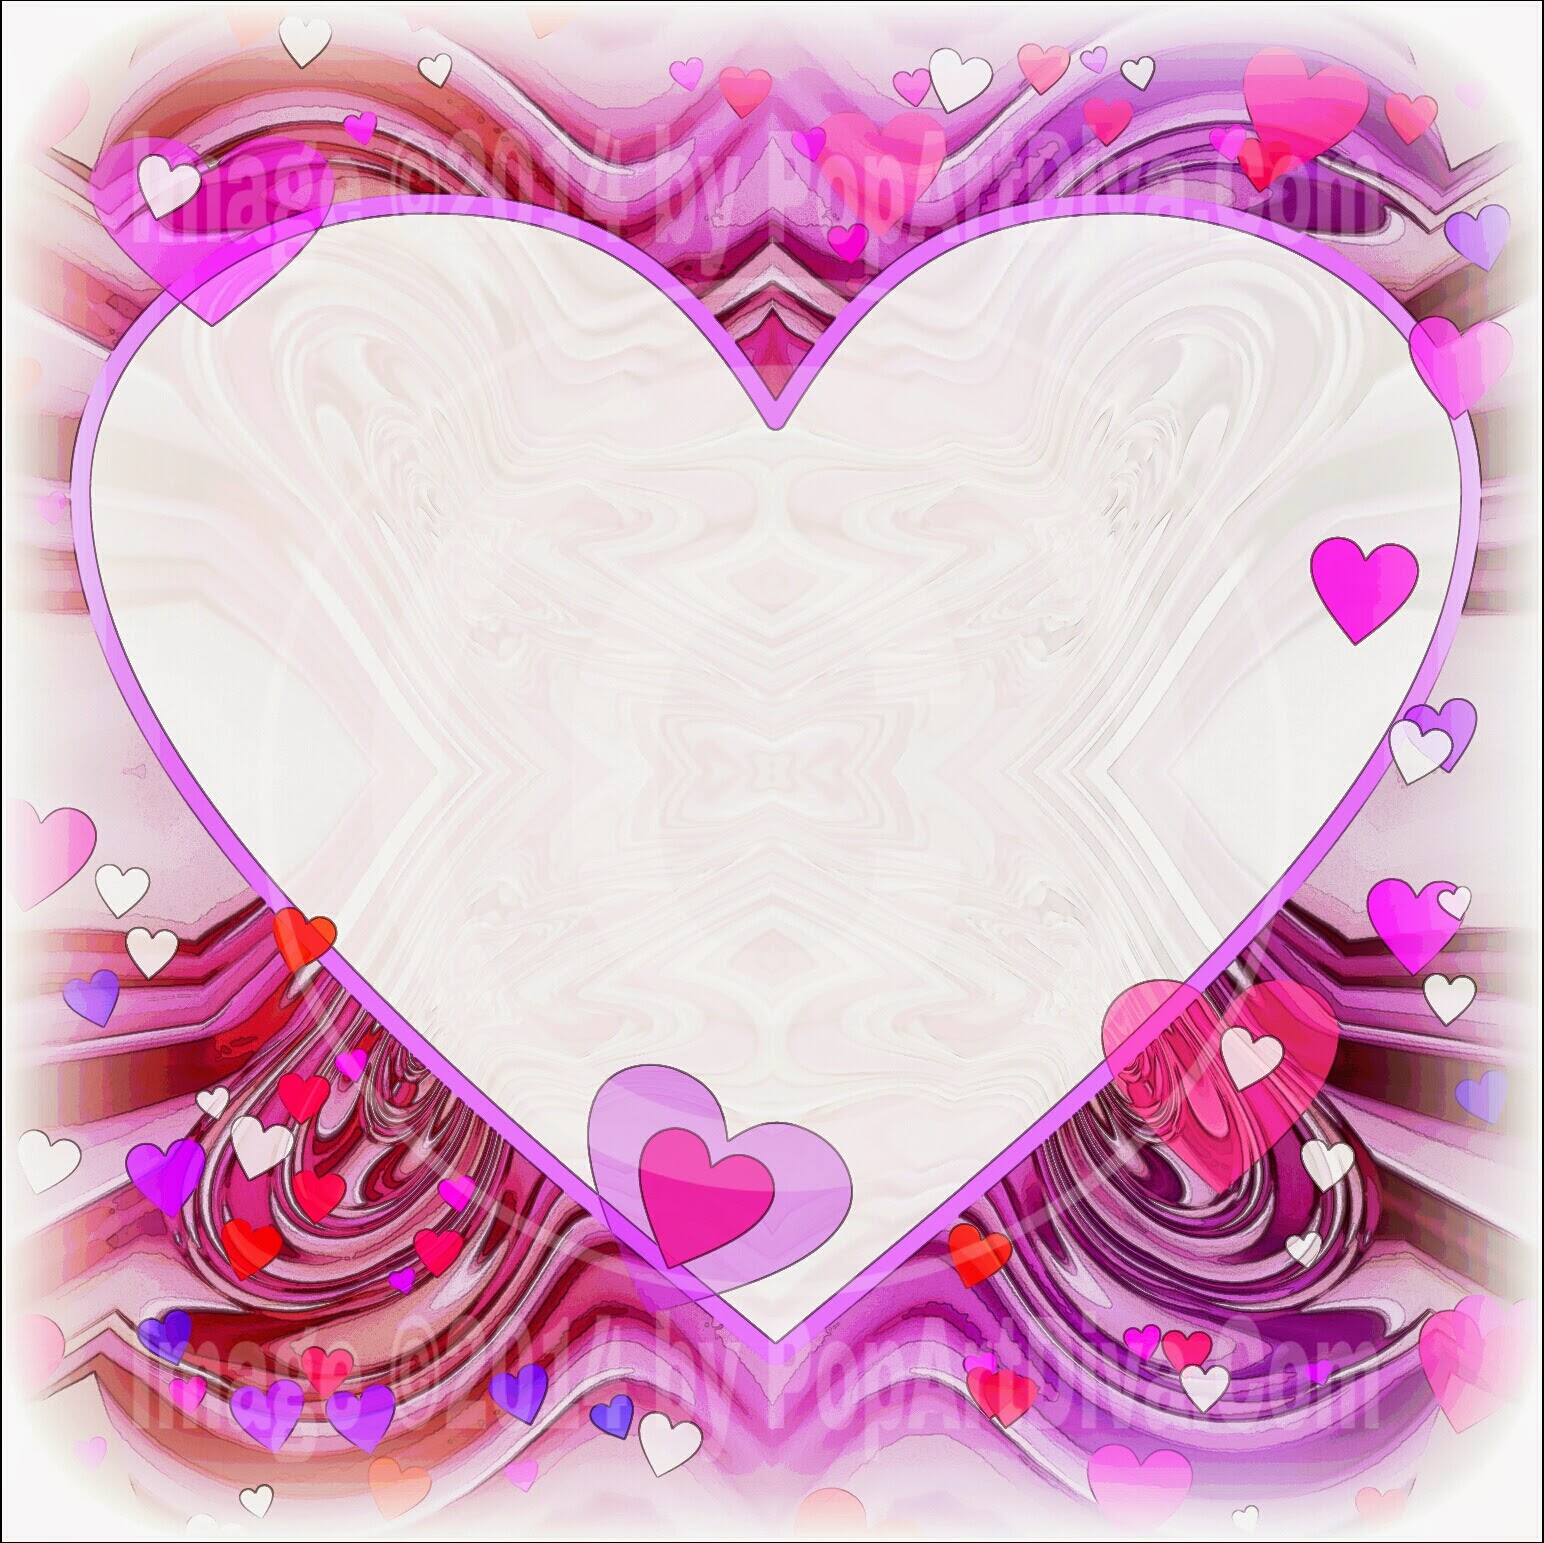 http://store.payloadz.com/details/2084851-photos-and-images-clip-art-squished-heart-web-graphic-frame-border.html